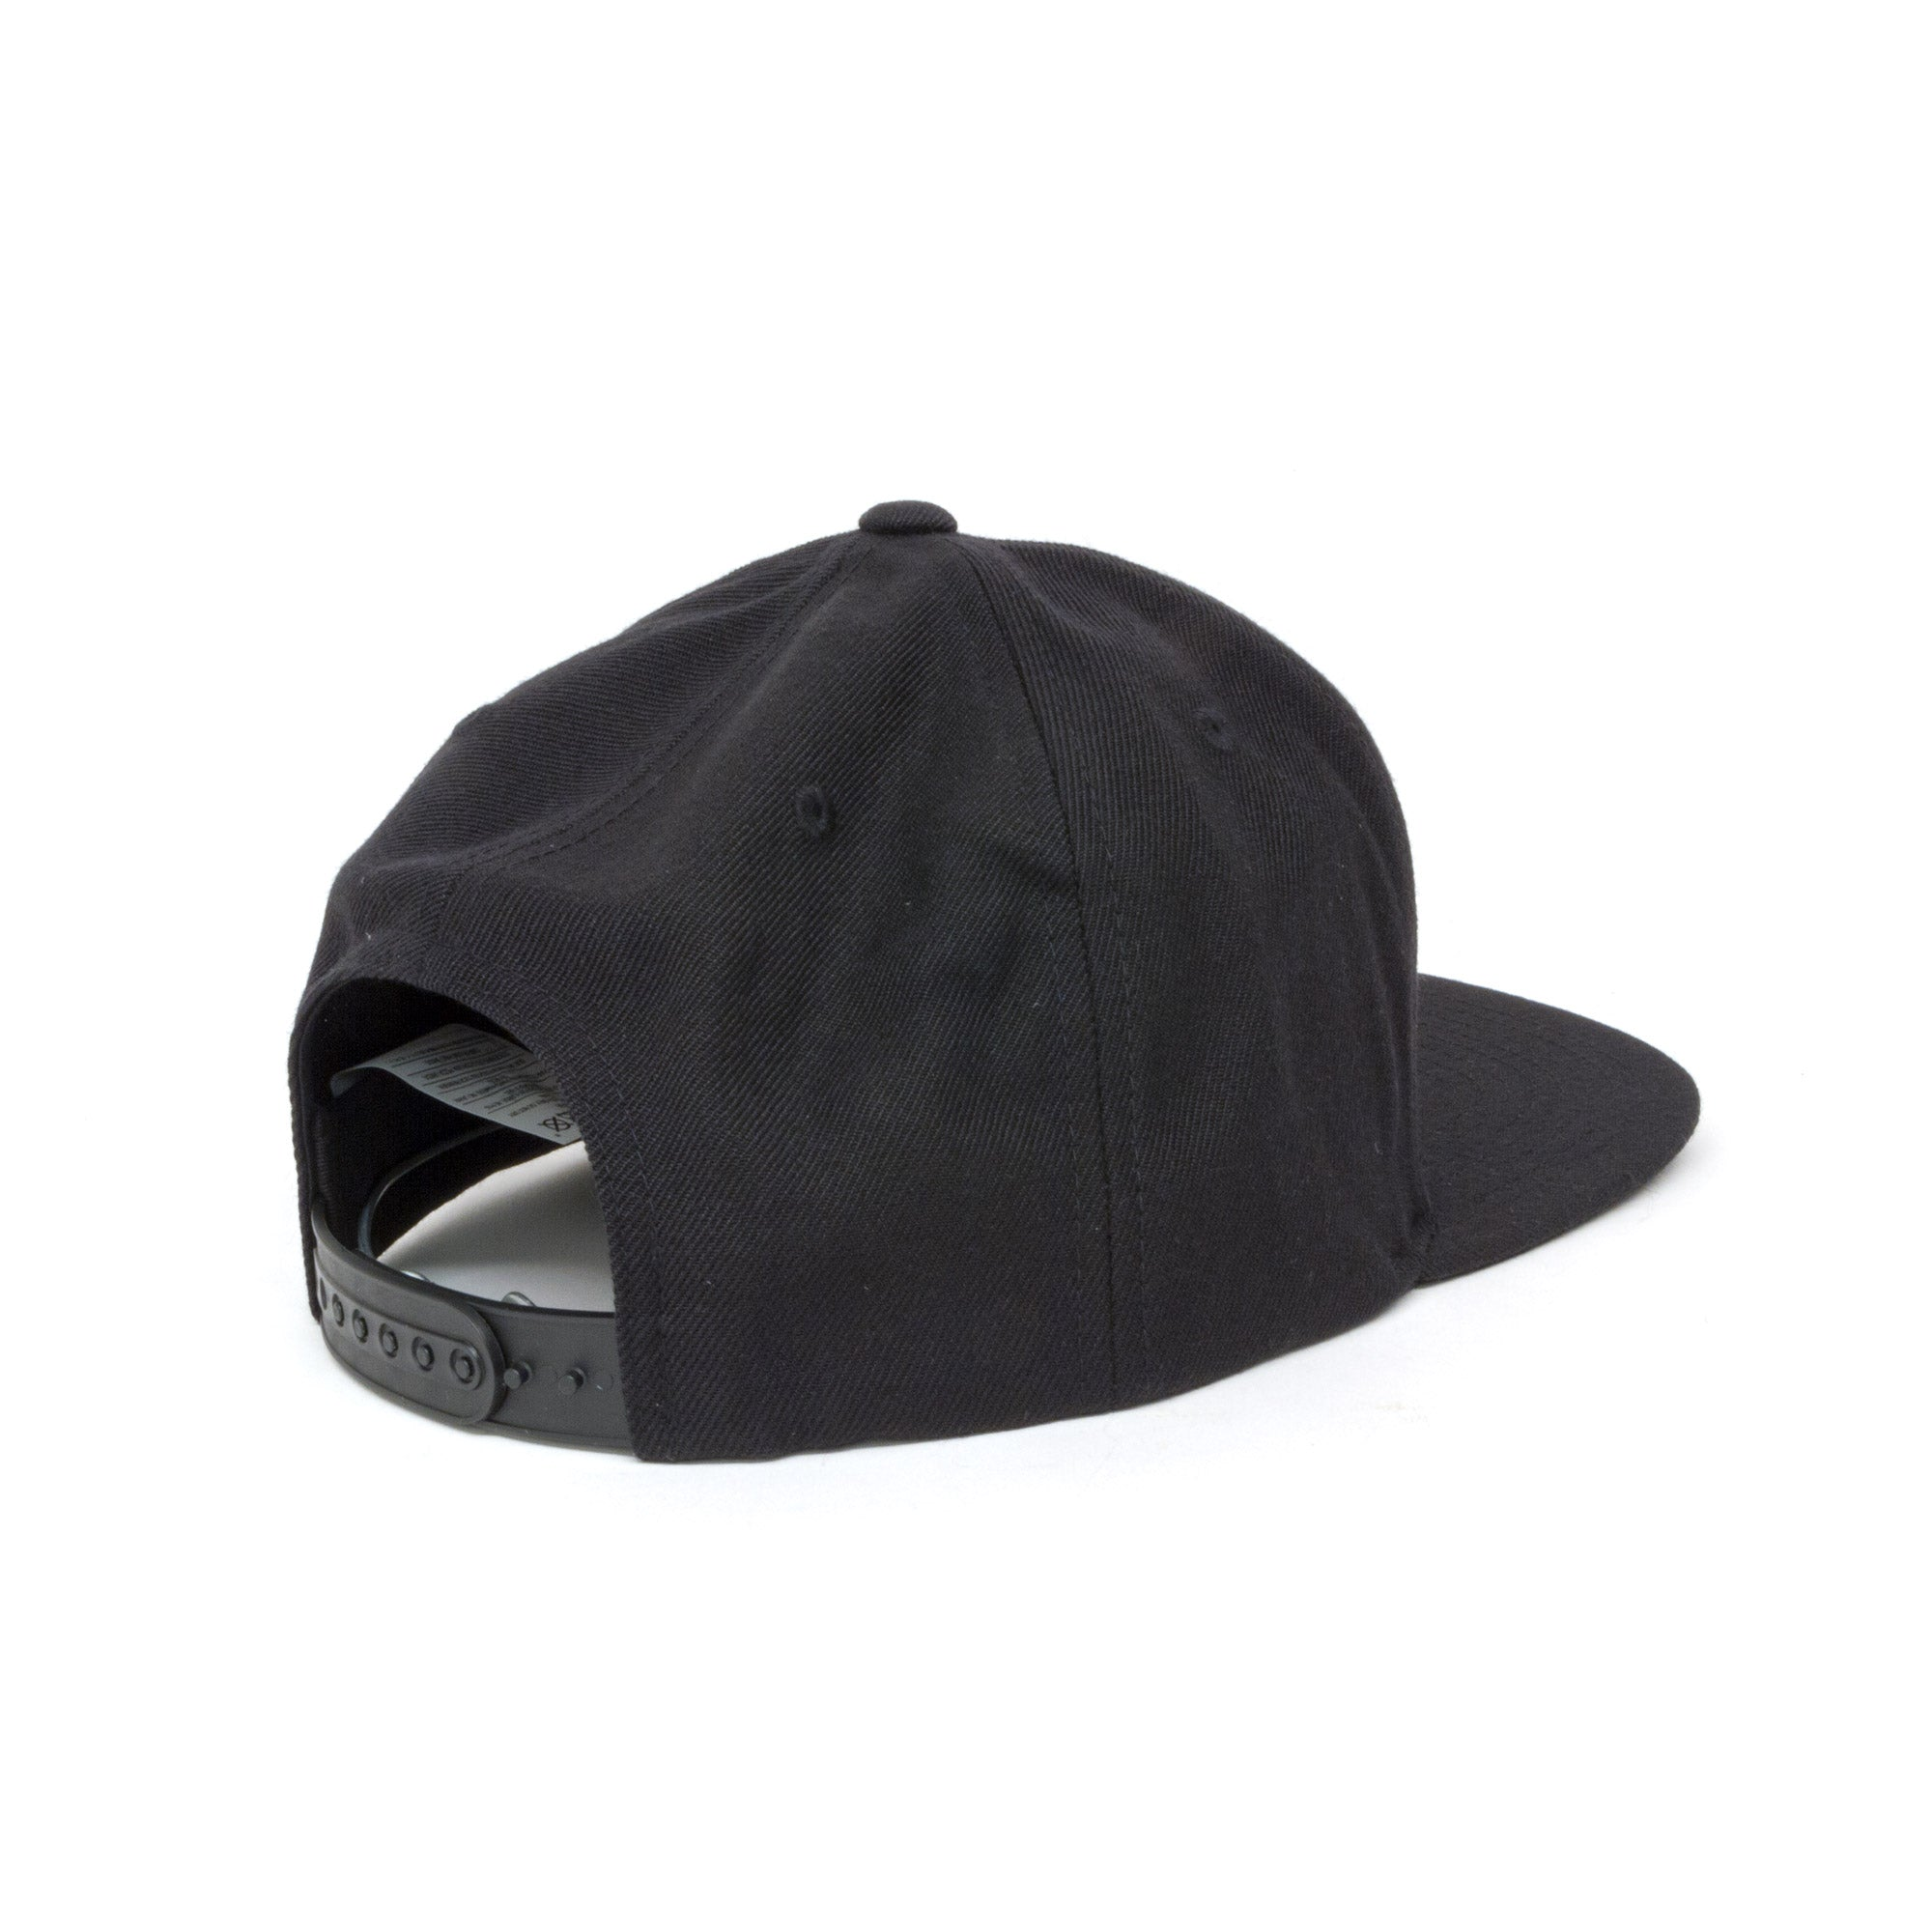 official photos 4b098 7cadb ... get volcom quarter twill snapback cap black 2a9e7 0dbf5